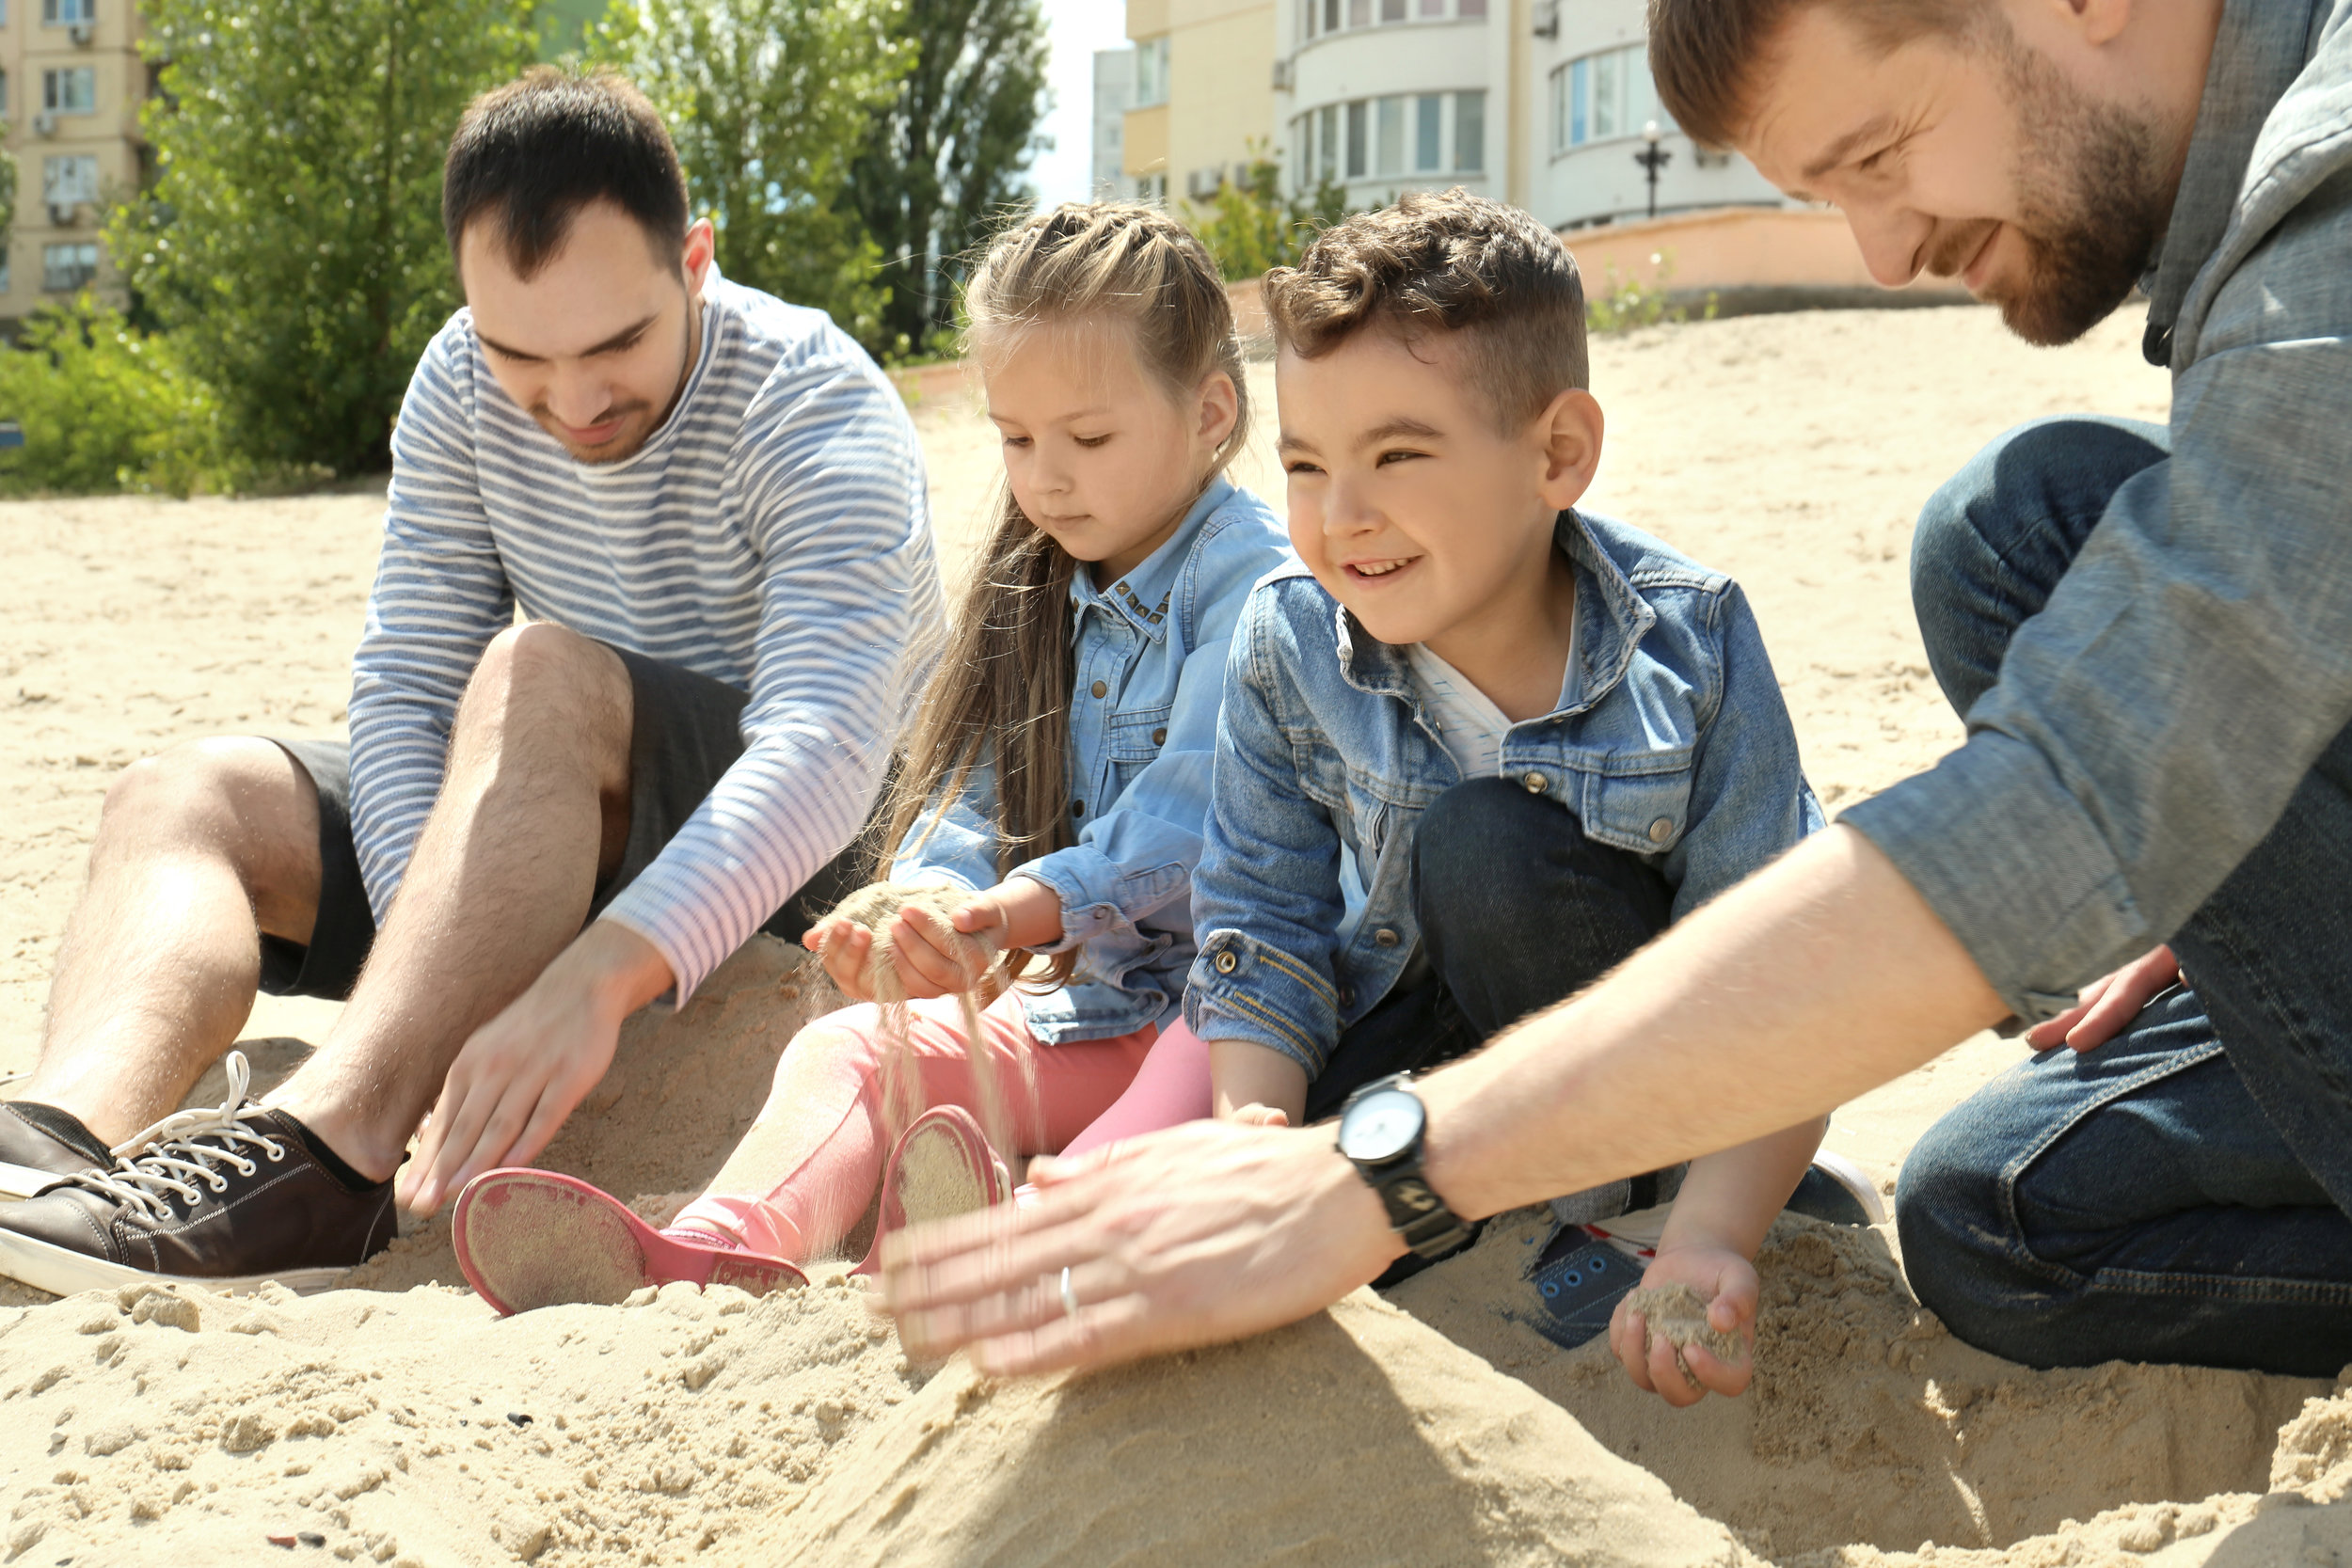 Men with children playing in sand.jpg